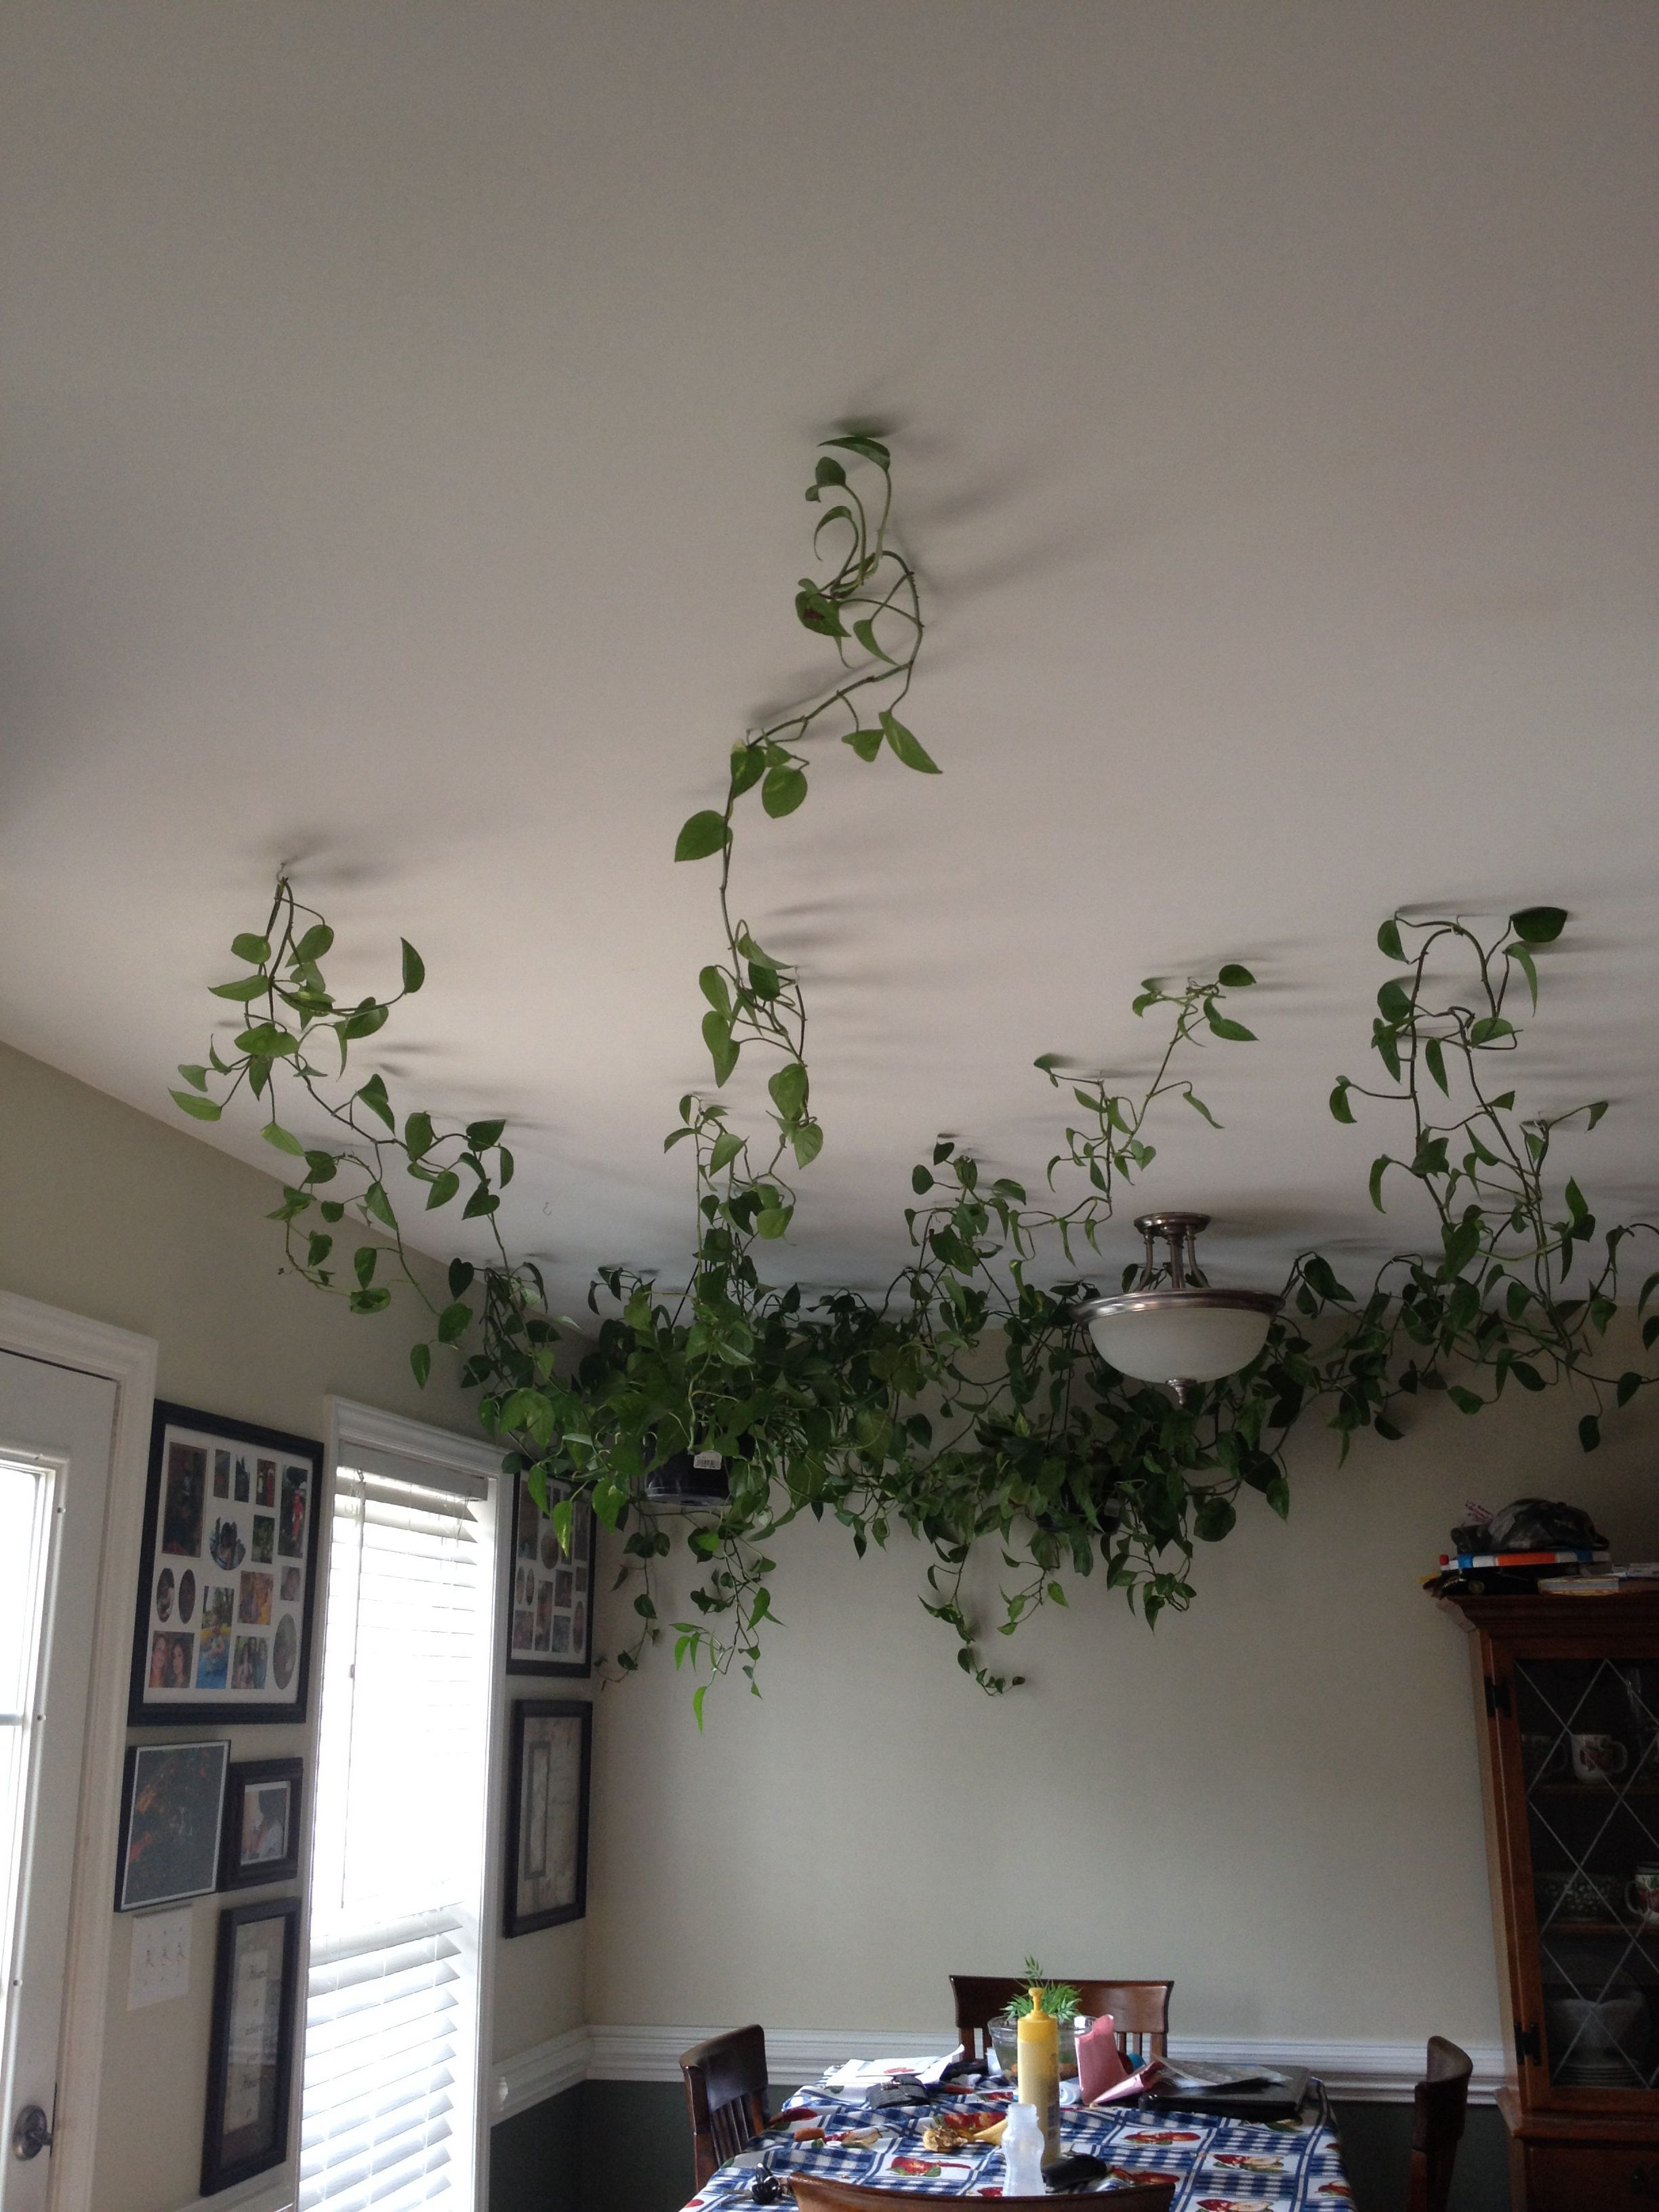 Hanging Vine Plants Across The Ceiling Use Hanging Hooks To Place